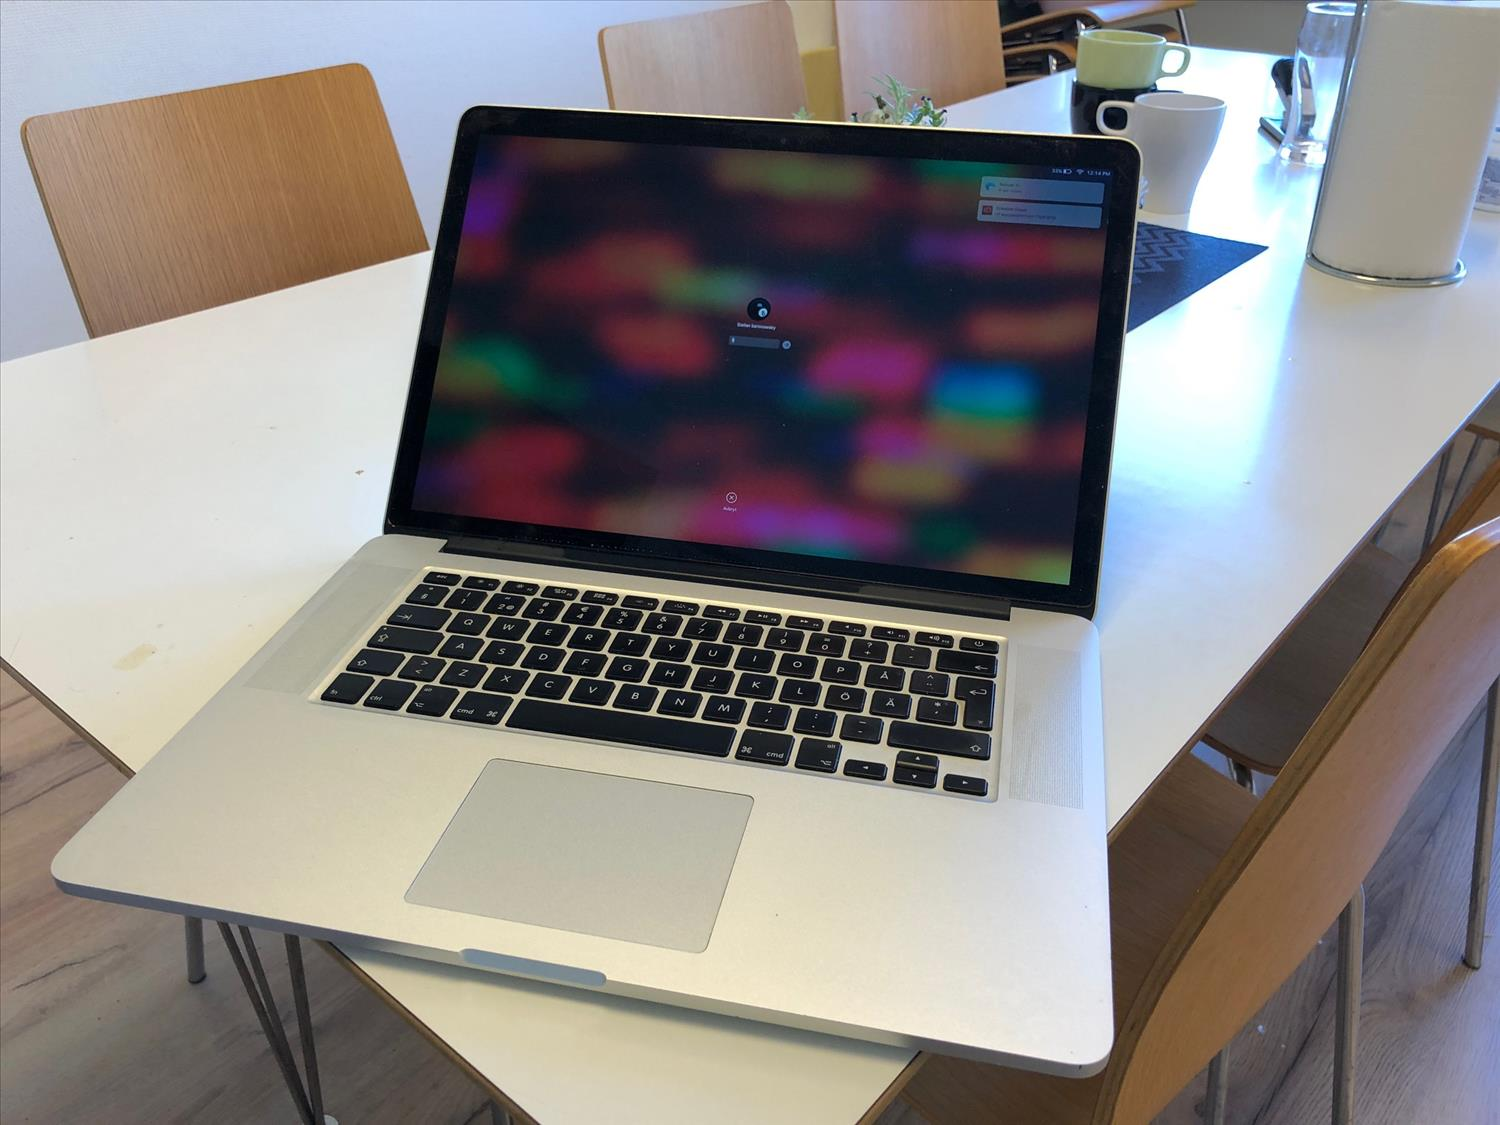 MacBook Pro 15 tum, Core i7 2.5Ghz Quad-Core, 16 GB RAM, 500 GB SSD